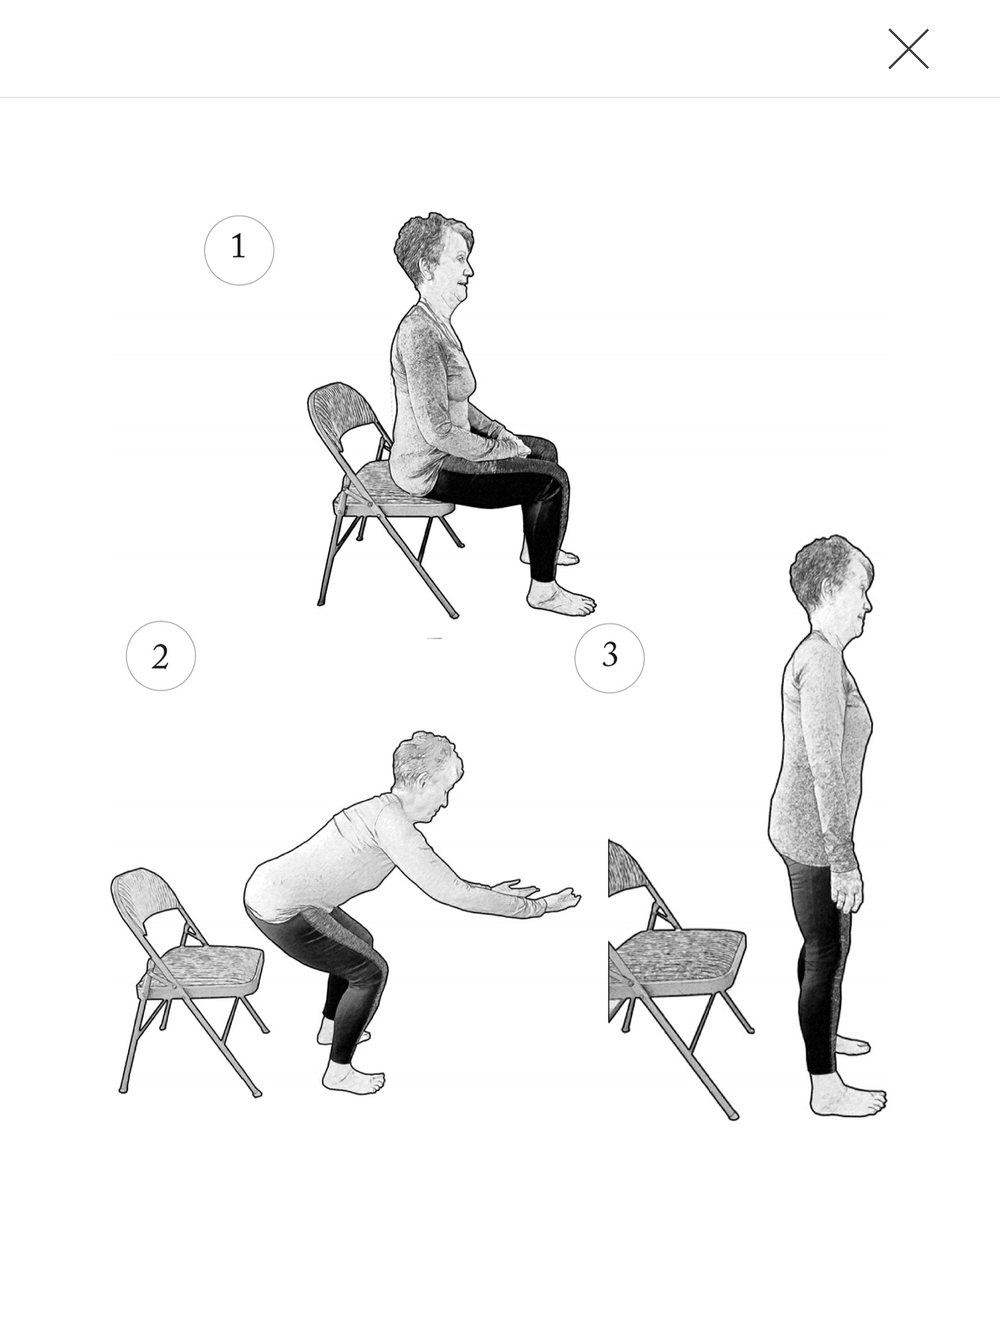 Shelah M. Wilgus - From Dynamic Aging: Simple Exercises for Whole-Body Mobility